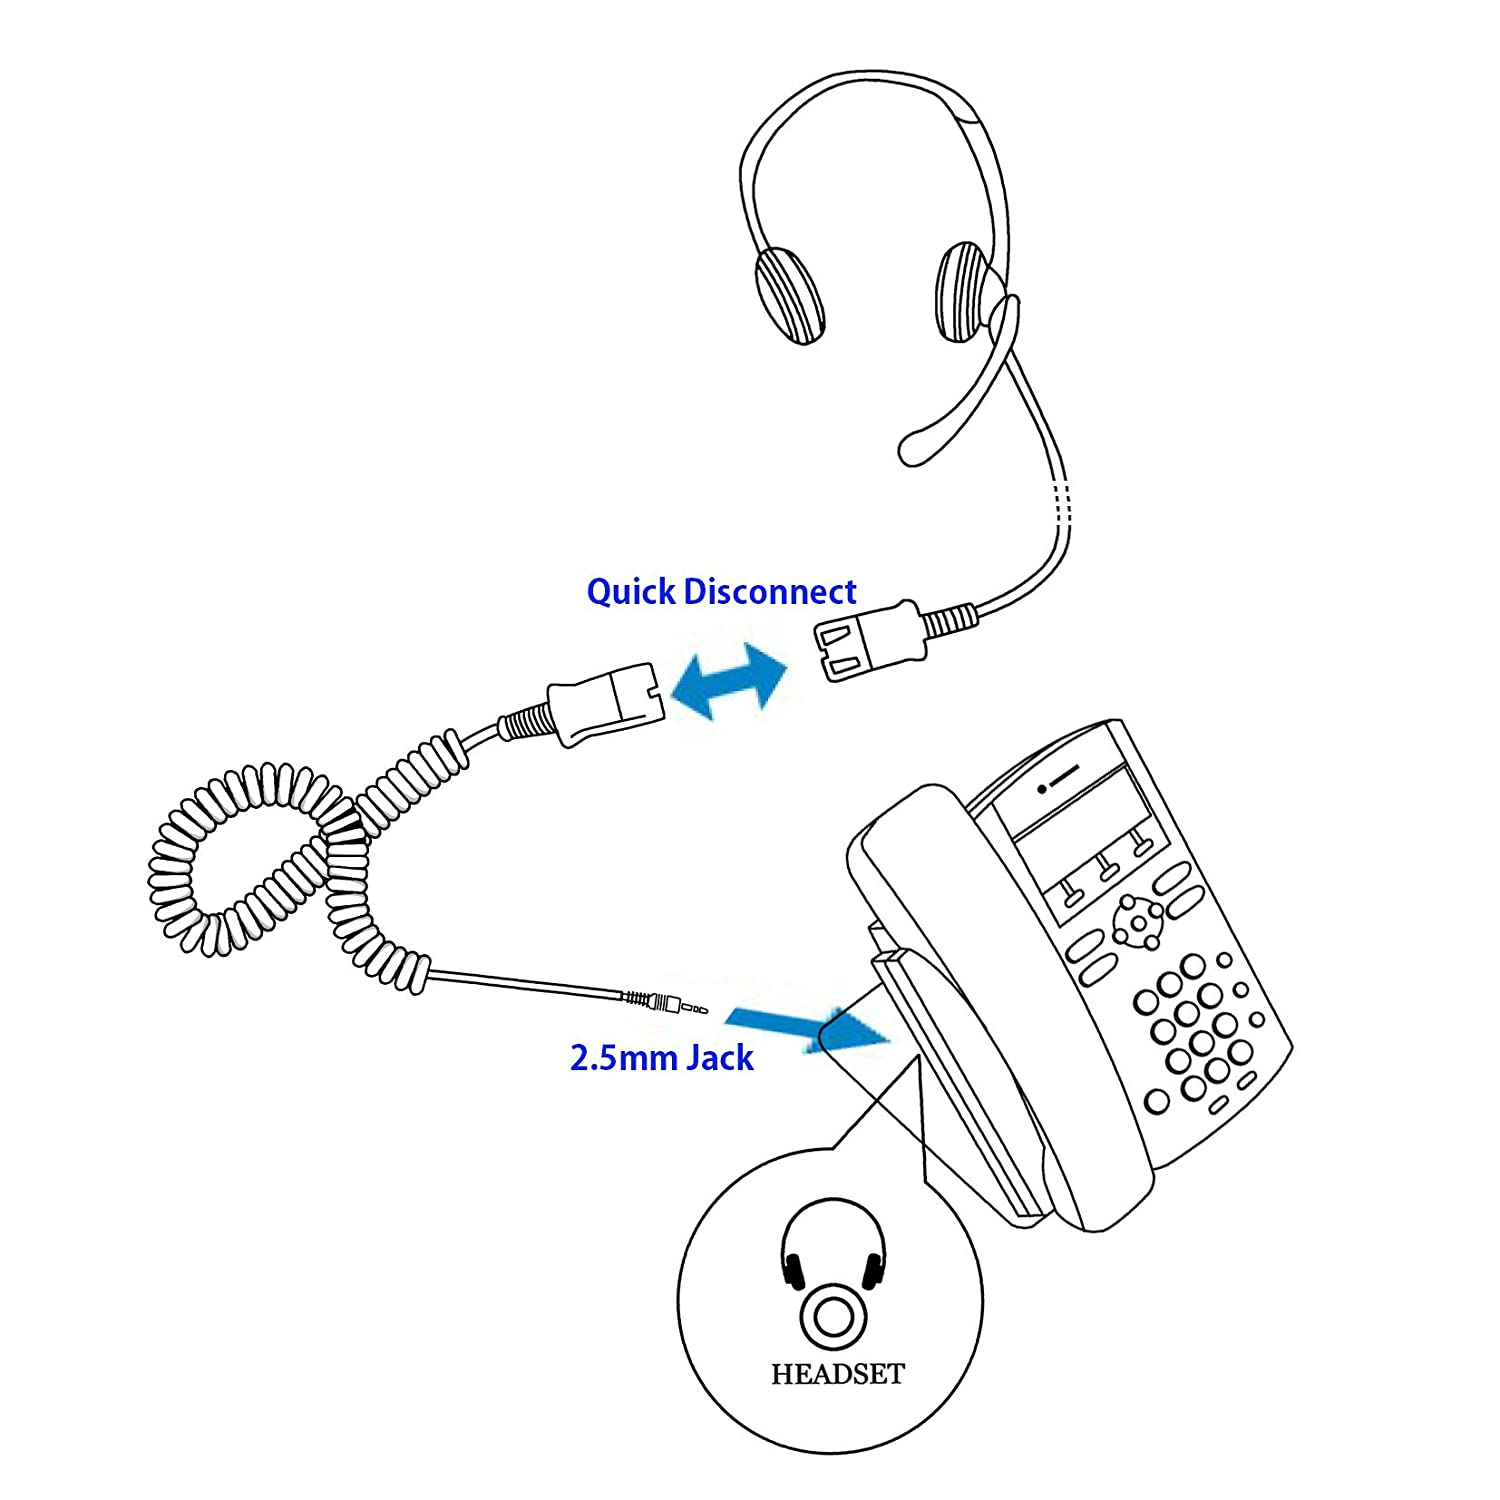 amazon 2 5mm headset package best pro noise cancel binaural USB Cable Pinout Diagram amazon 2 5mm headset package best pro noise cancel binaural office headset 2 5mm headset cord patible with plantronics qd electronics